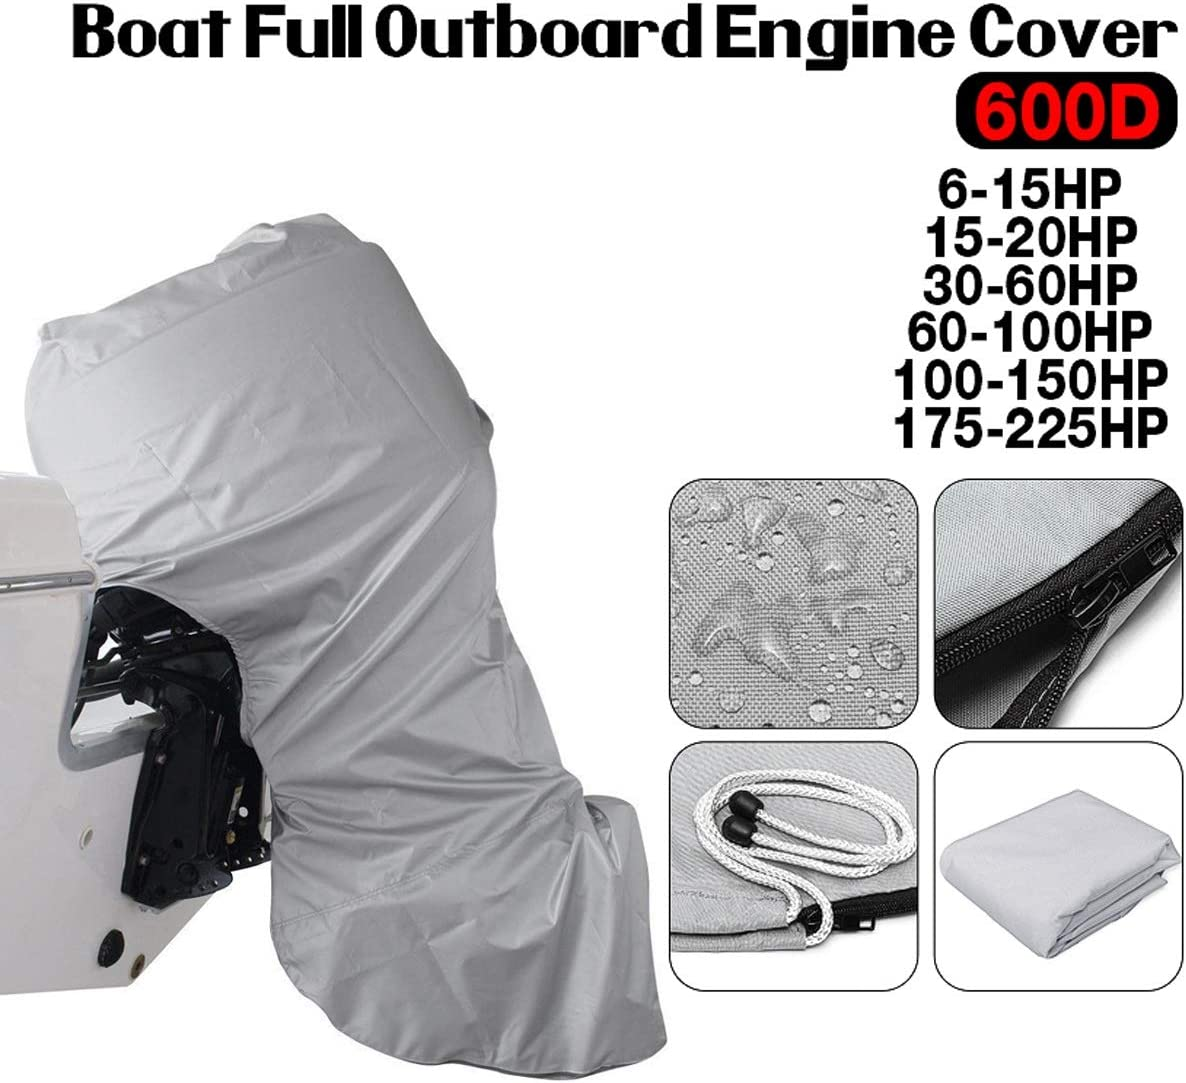 7 Sizes Full Motor Cover Waterproof Black 600D Boat Full Outboard Engine Cover